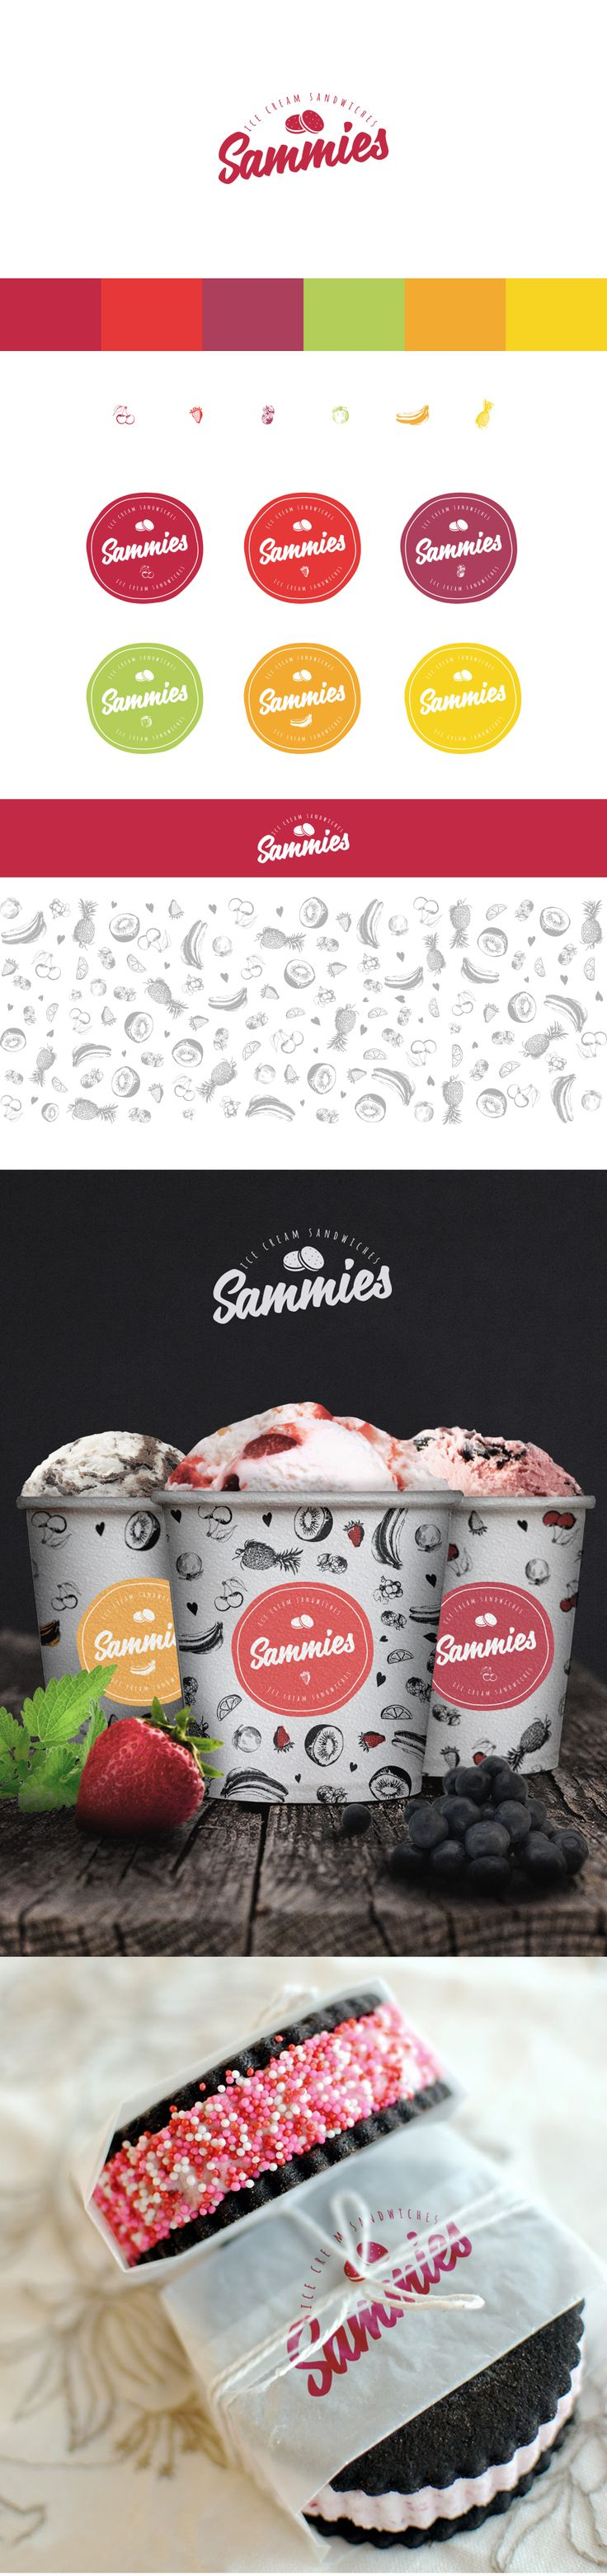 Sammies Ice cream sandwiches logo and some packaging.